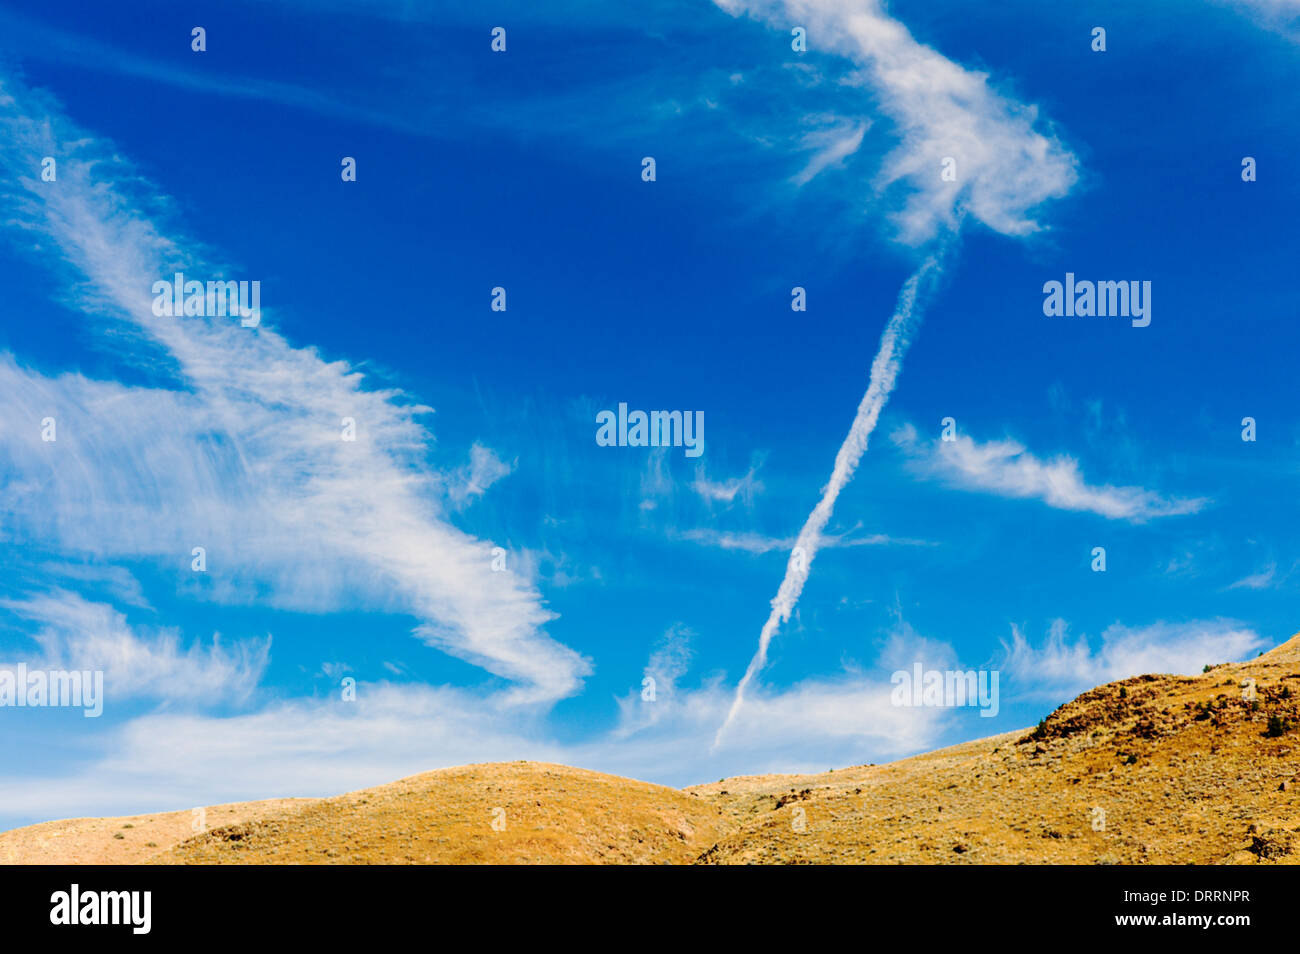 Unusual white clouds against a clear blue Colorado sky - Stock Image